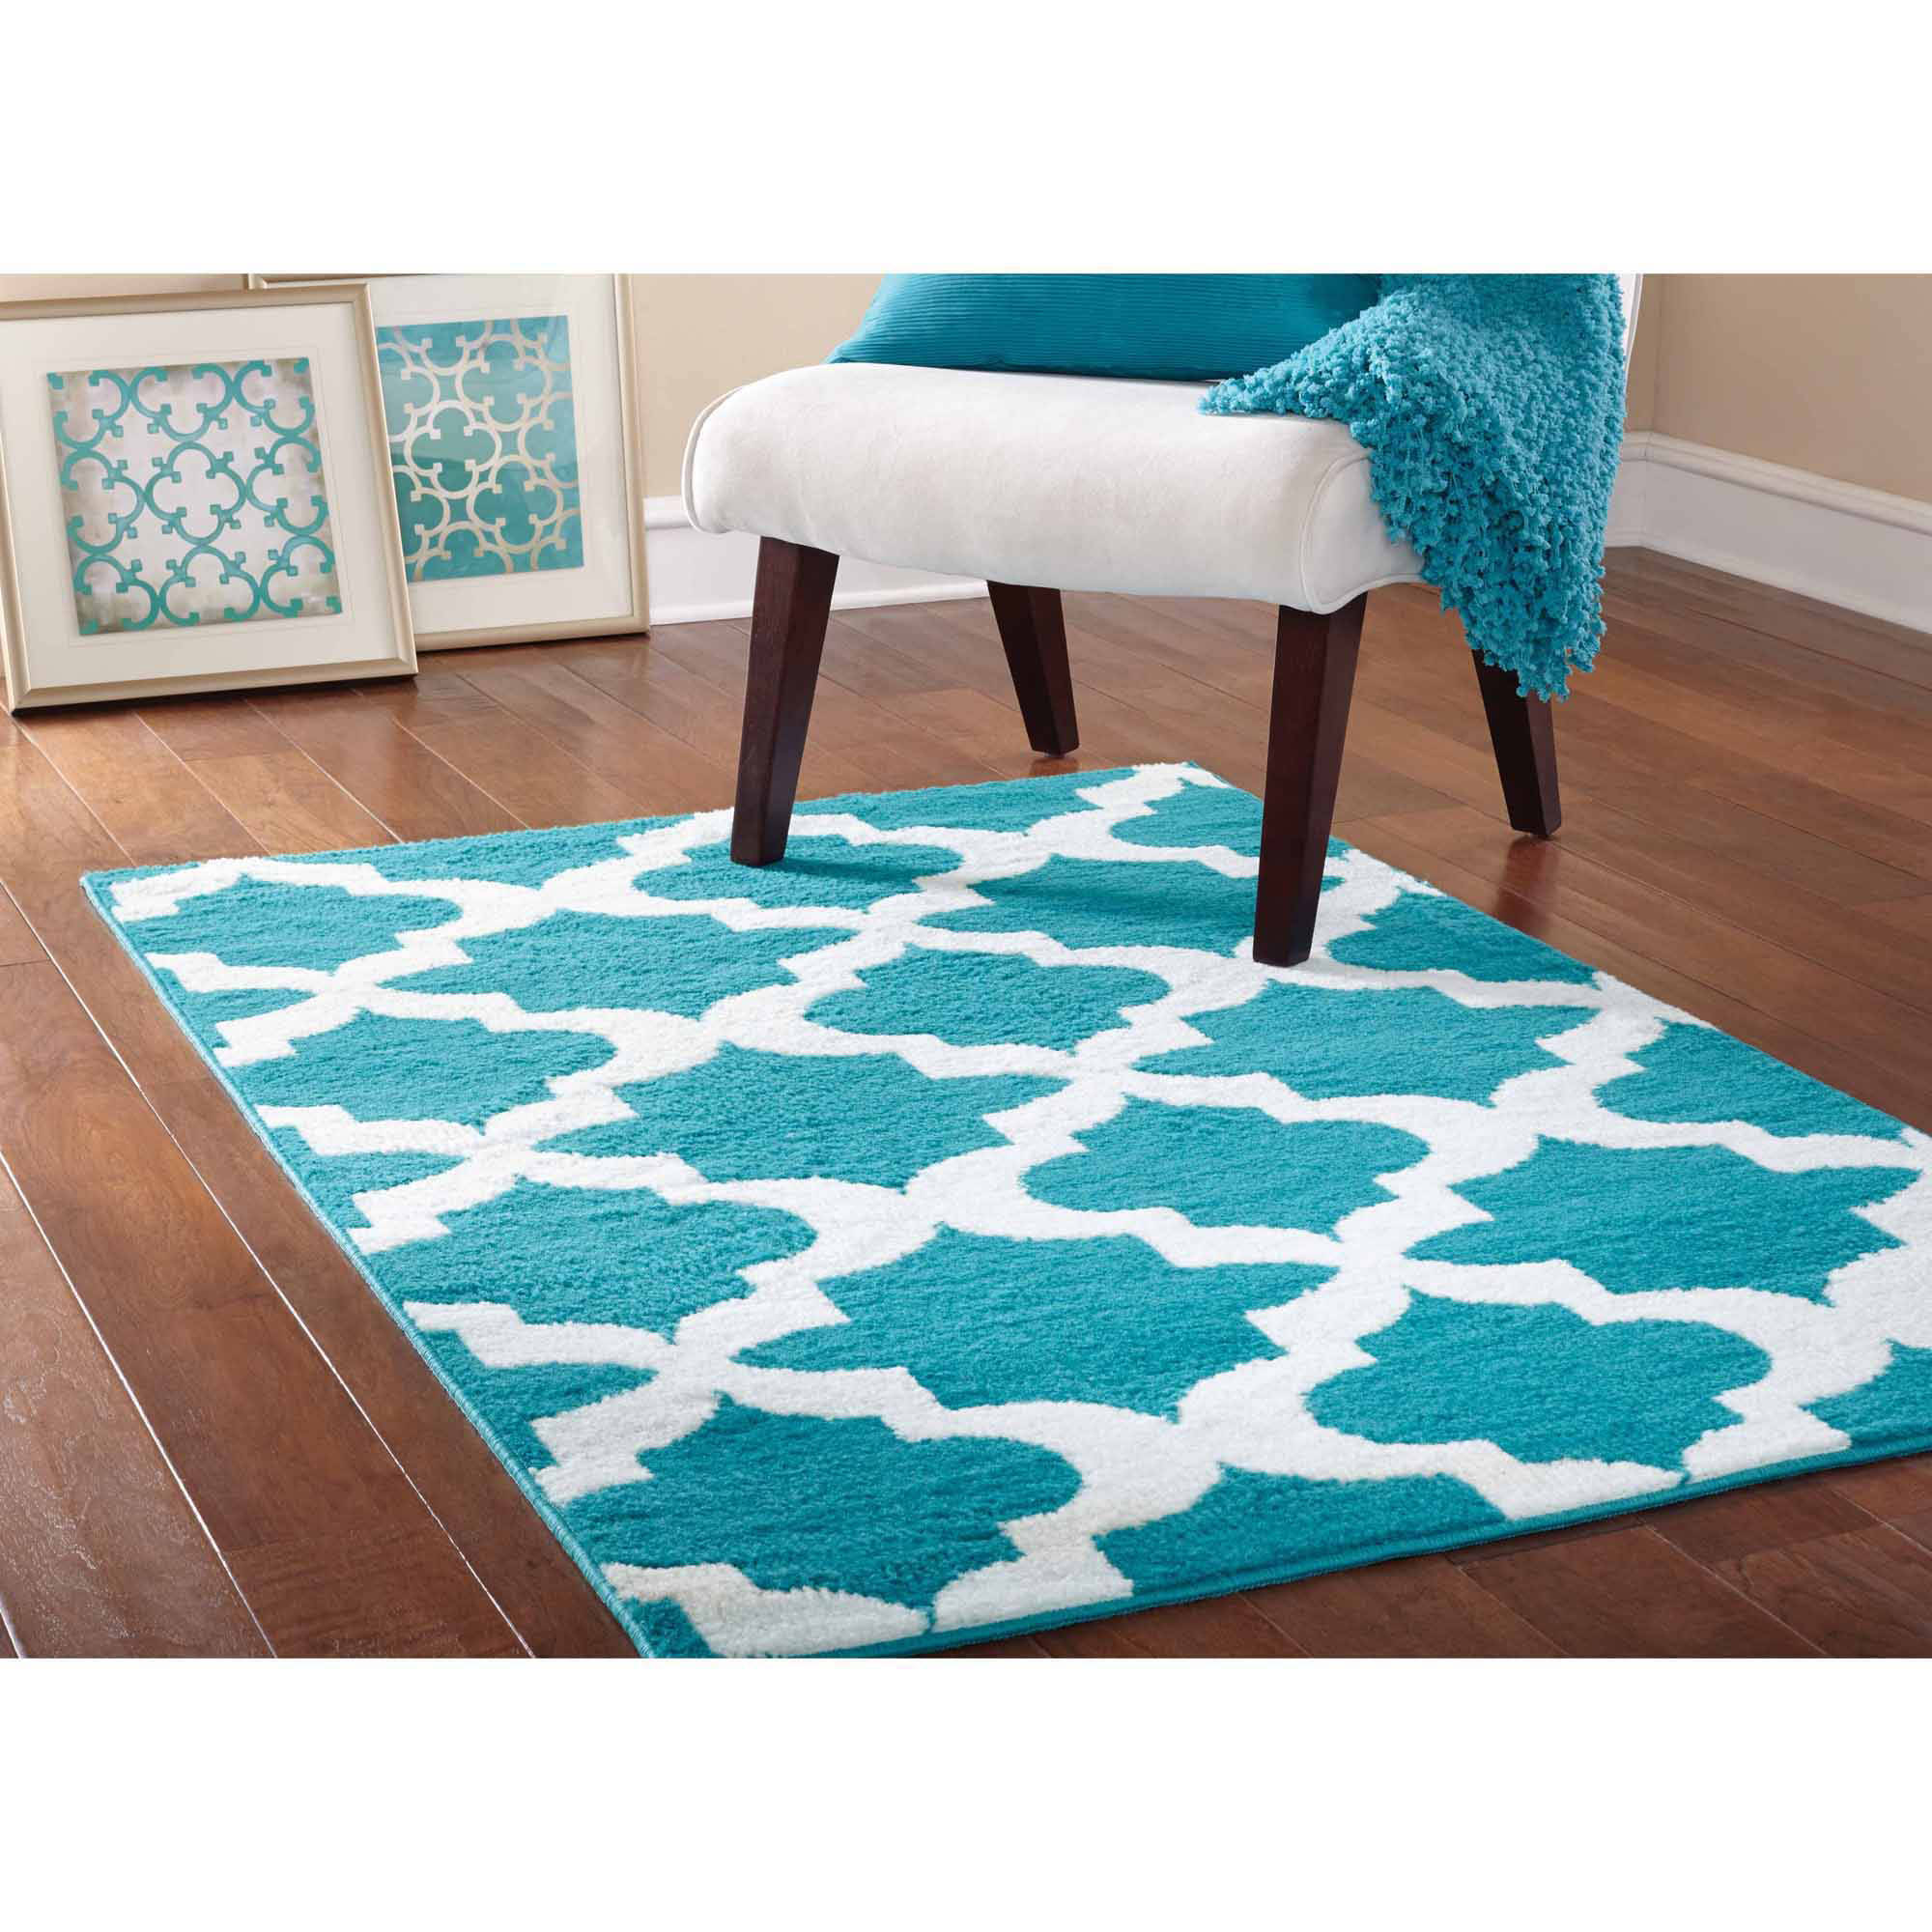 Mainstays Quatrefoil Area Rug Available In Multiple Colors And Sizes